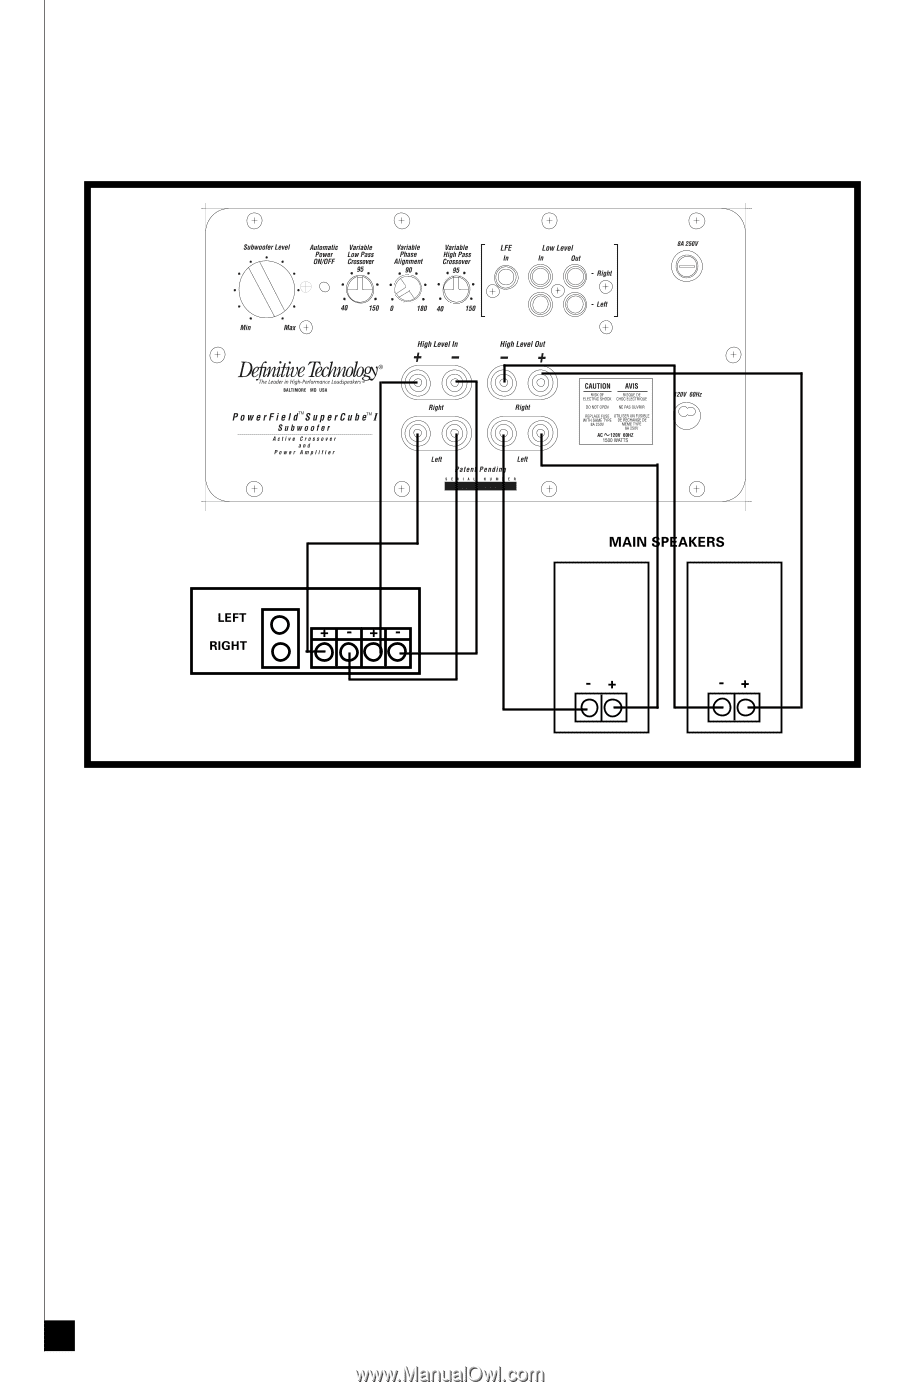 hight resolution of definitive technology wiring diagram